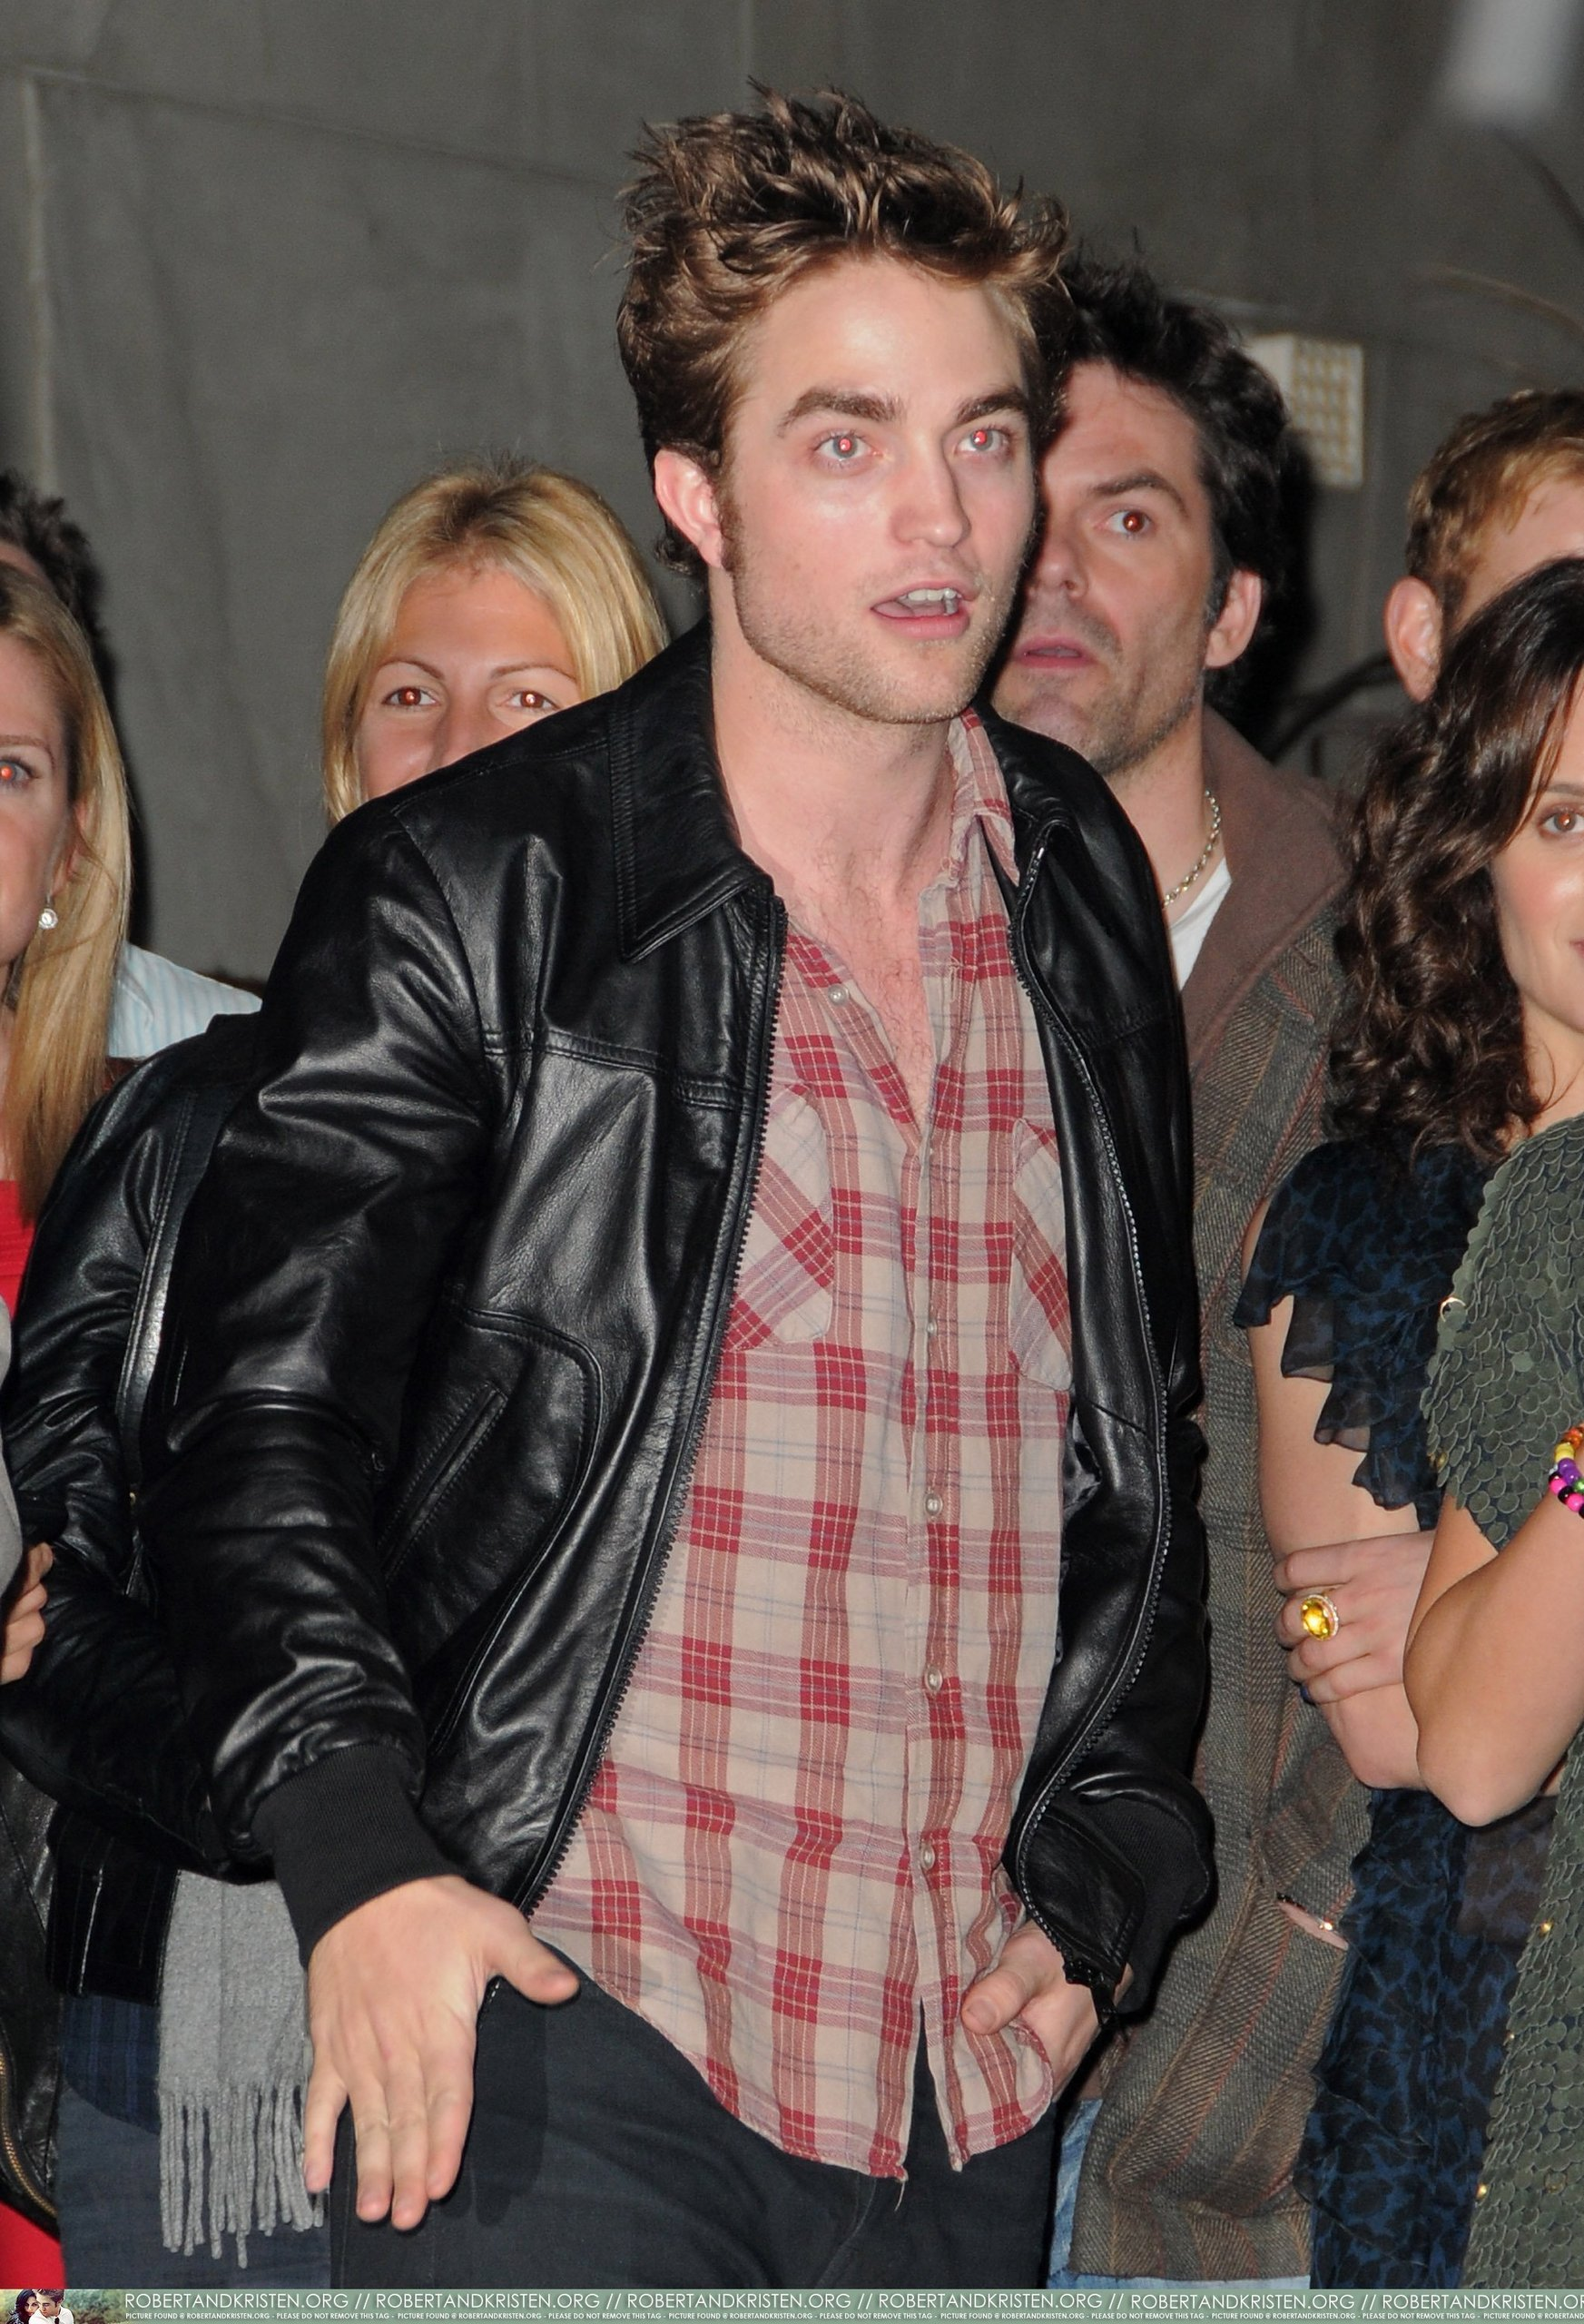 HQ تصاویر of Robert Pattinson at Hot Topic